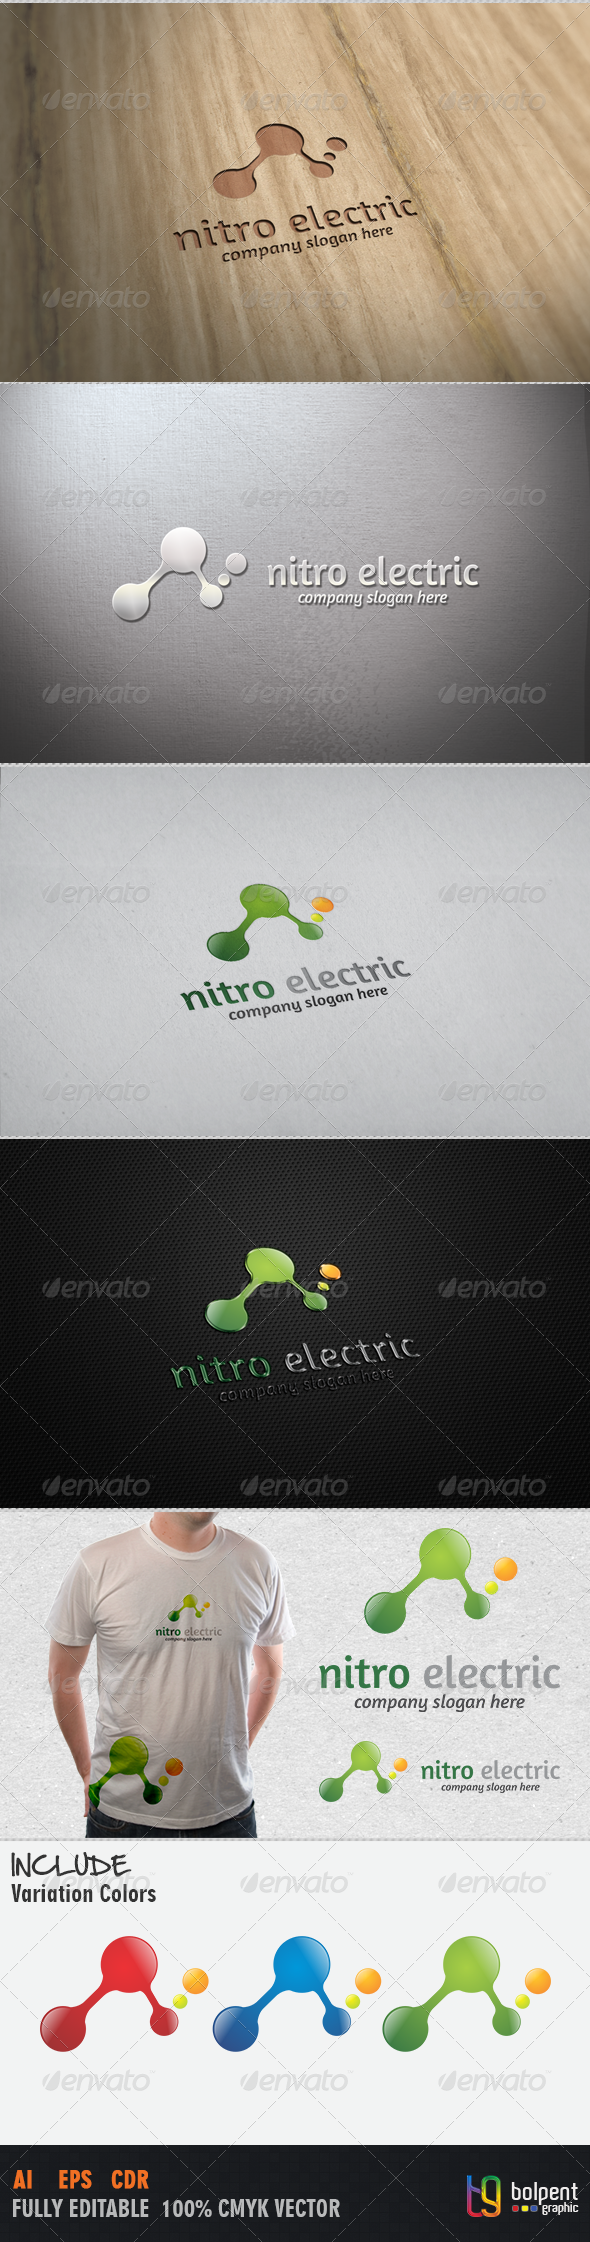 Nitro Electric Logo Template - Vector Abstract